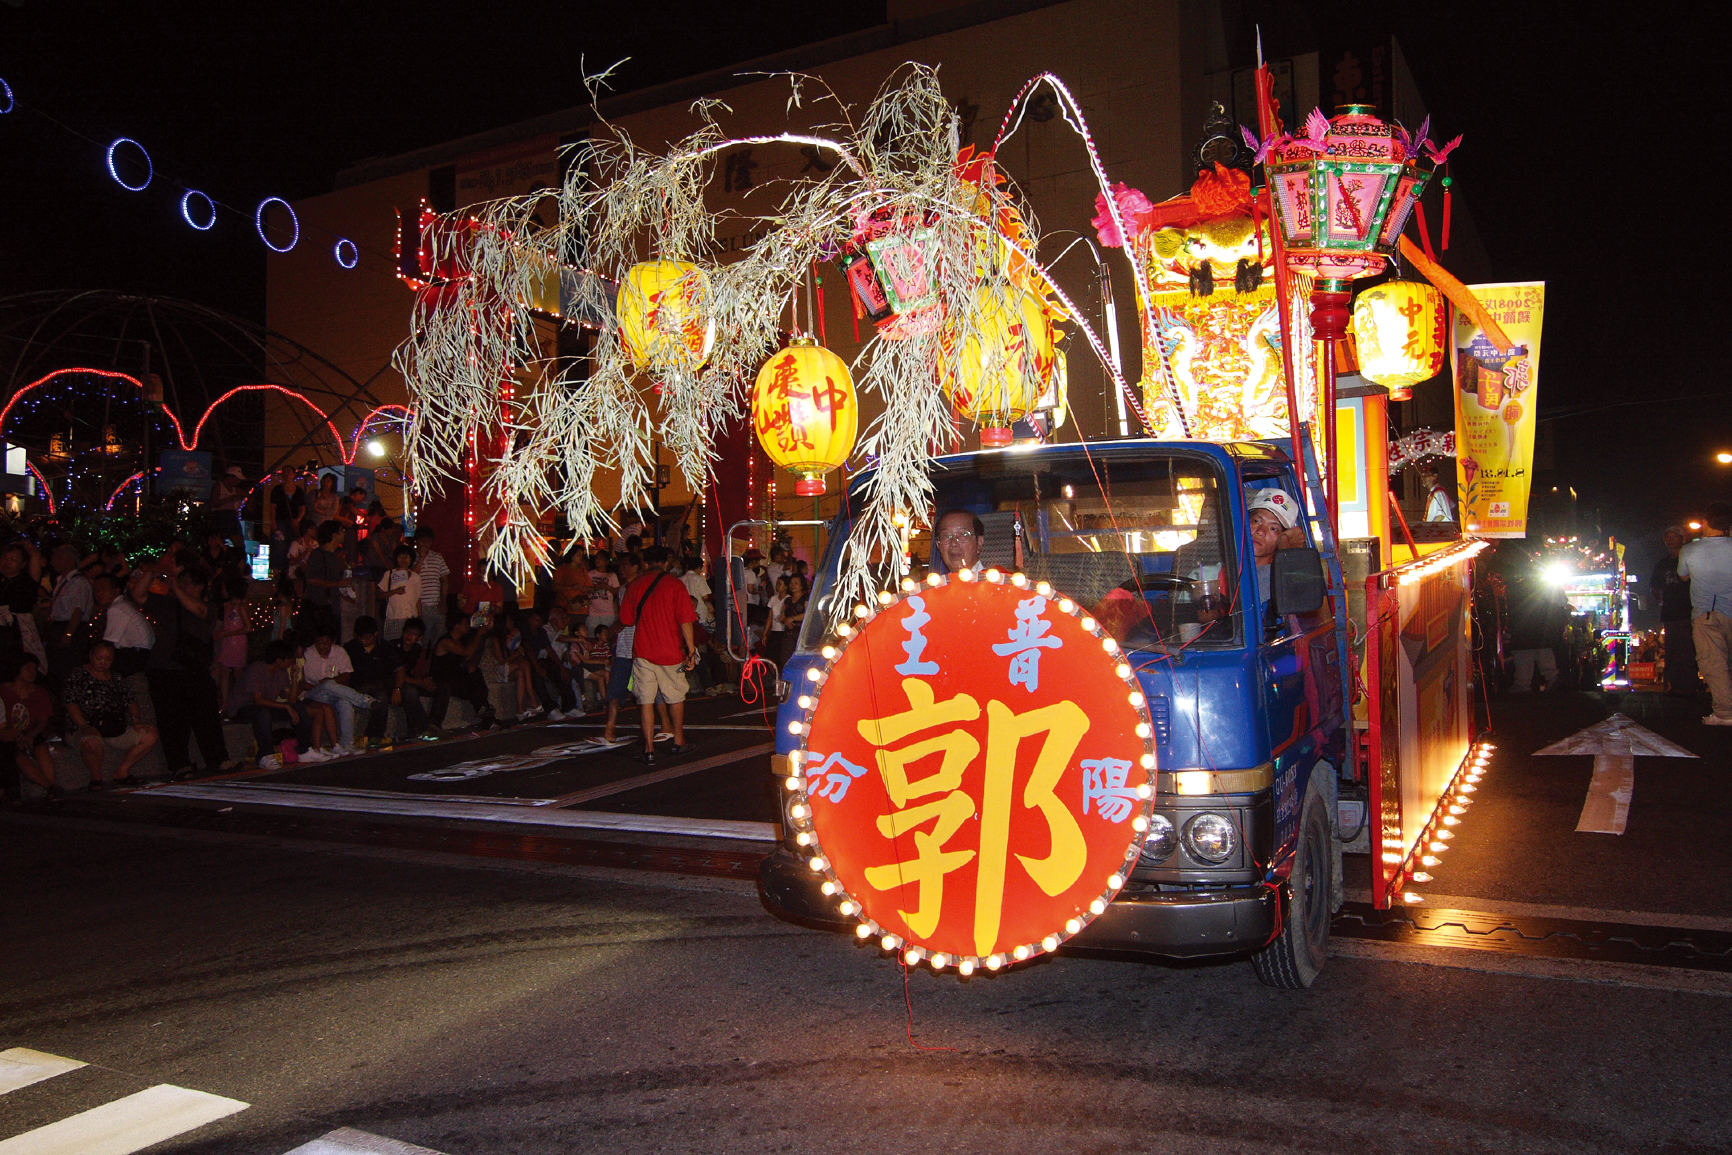 The Kuo clan float enters the evening parade on August 14.